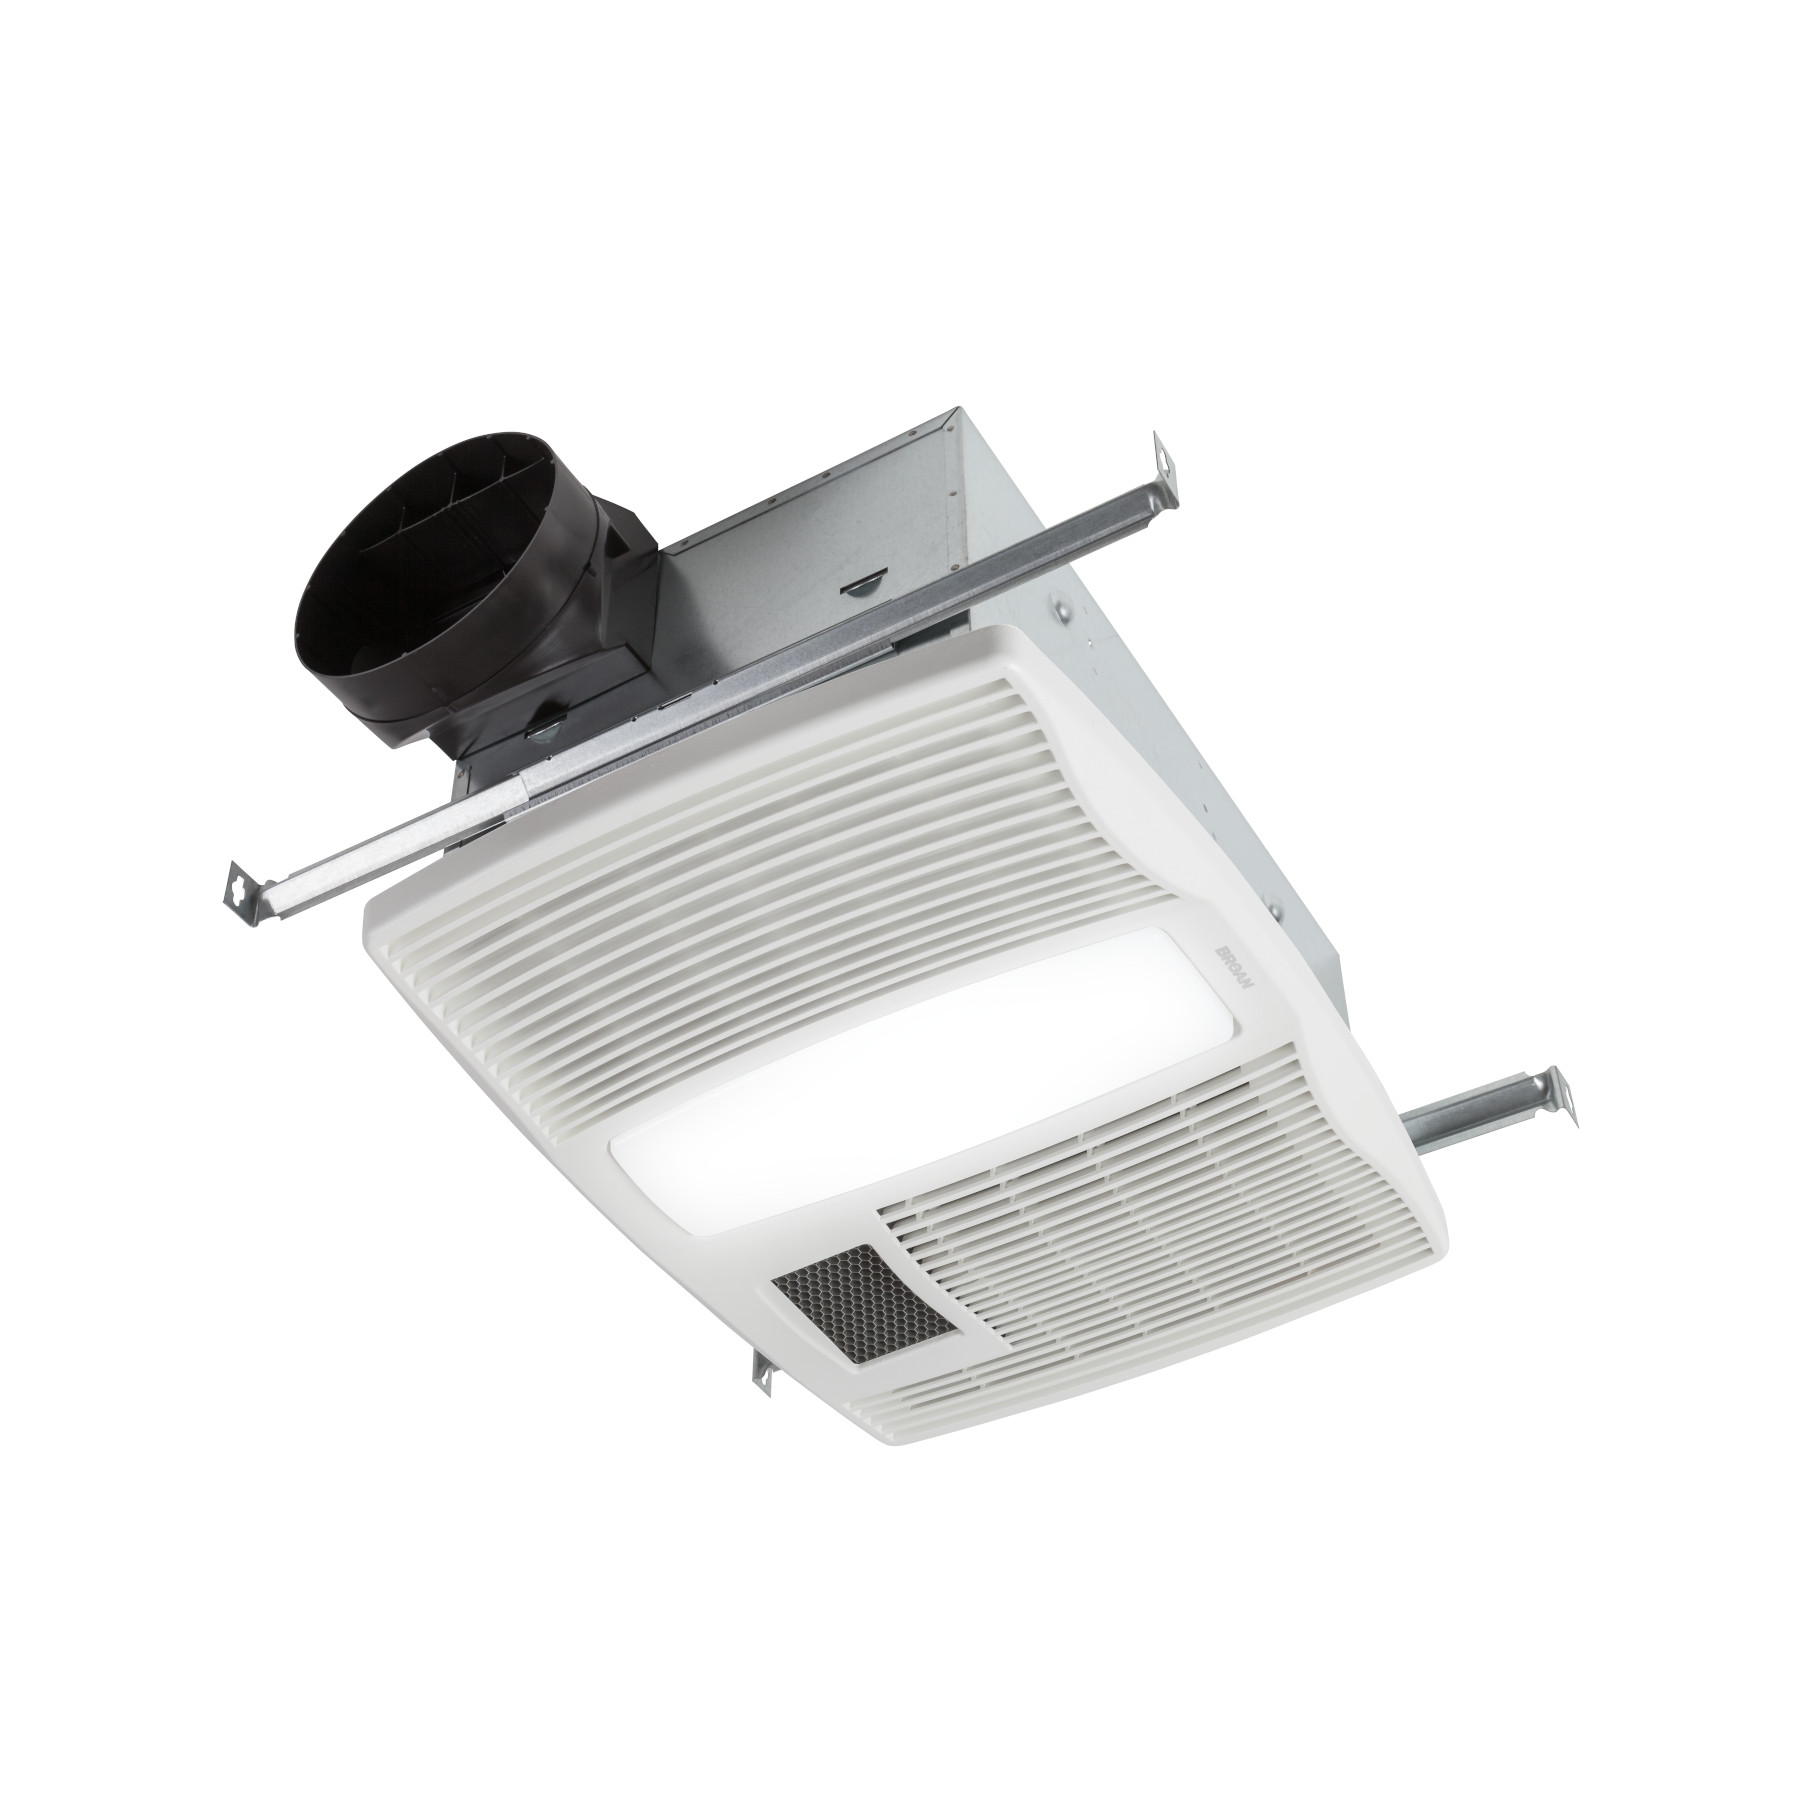 Broan® QT Series 110 CFM Ventilation Fan with Heater and Florescent Light, 0.9 Sones